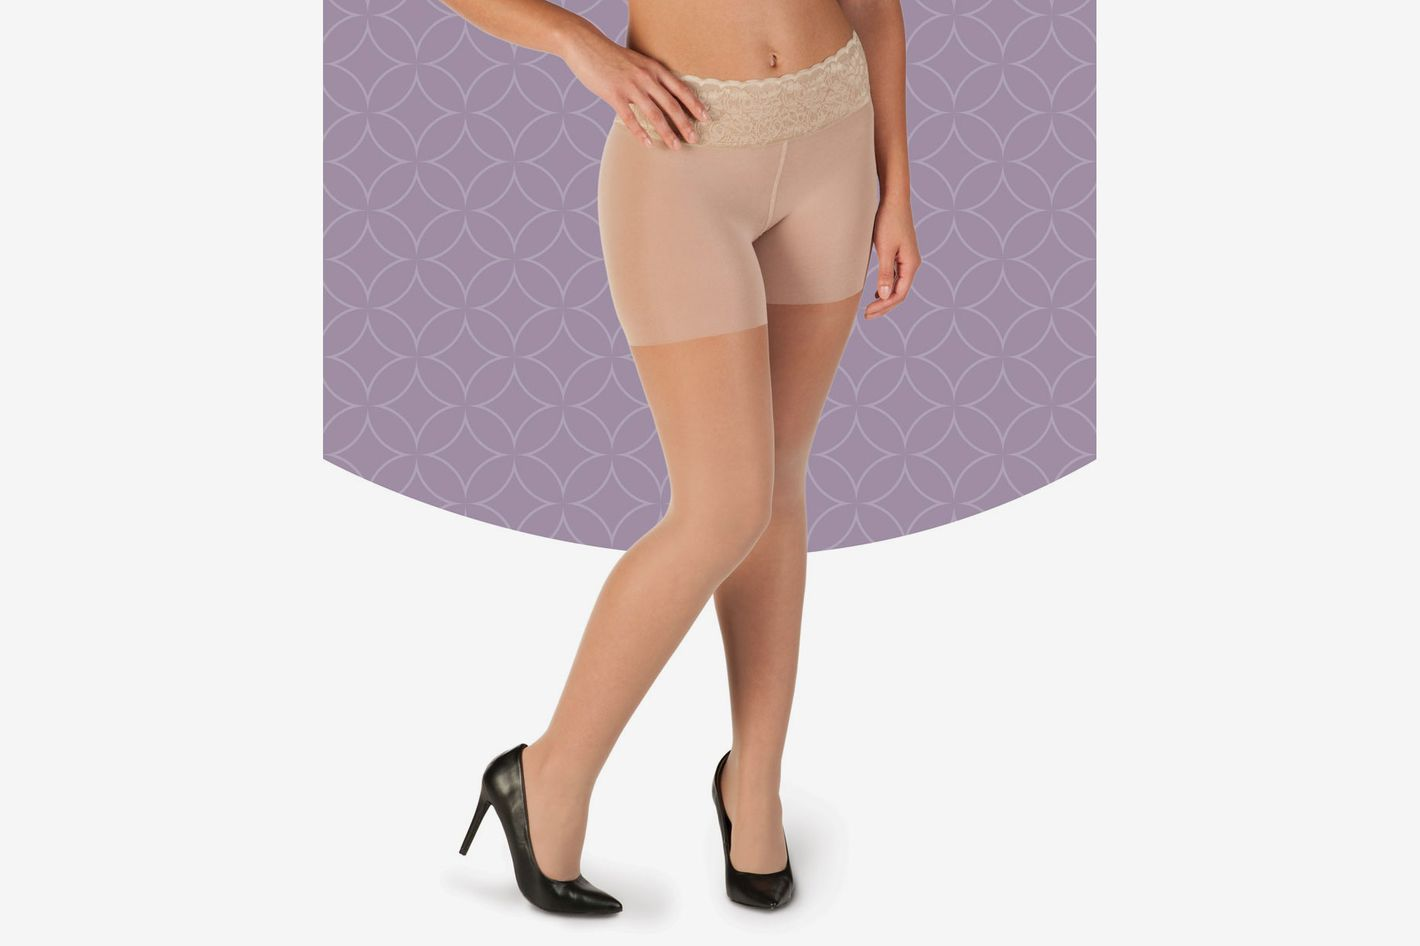 Hipstik Sheer, Light Nude Pantyhose